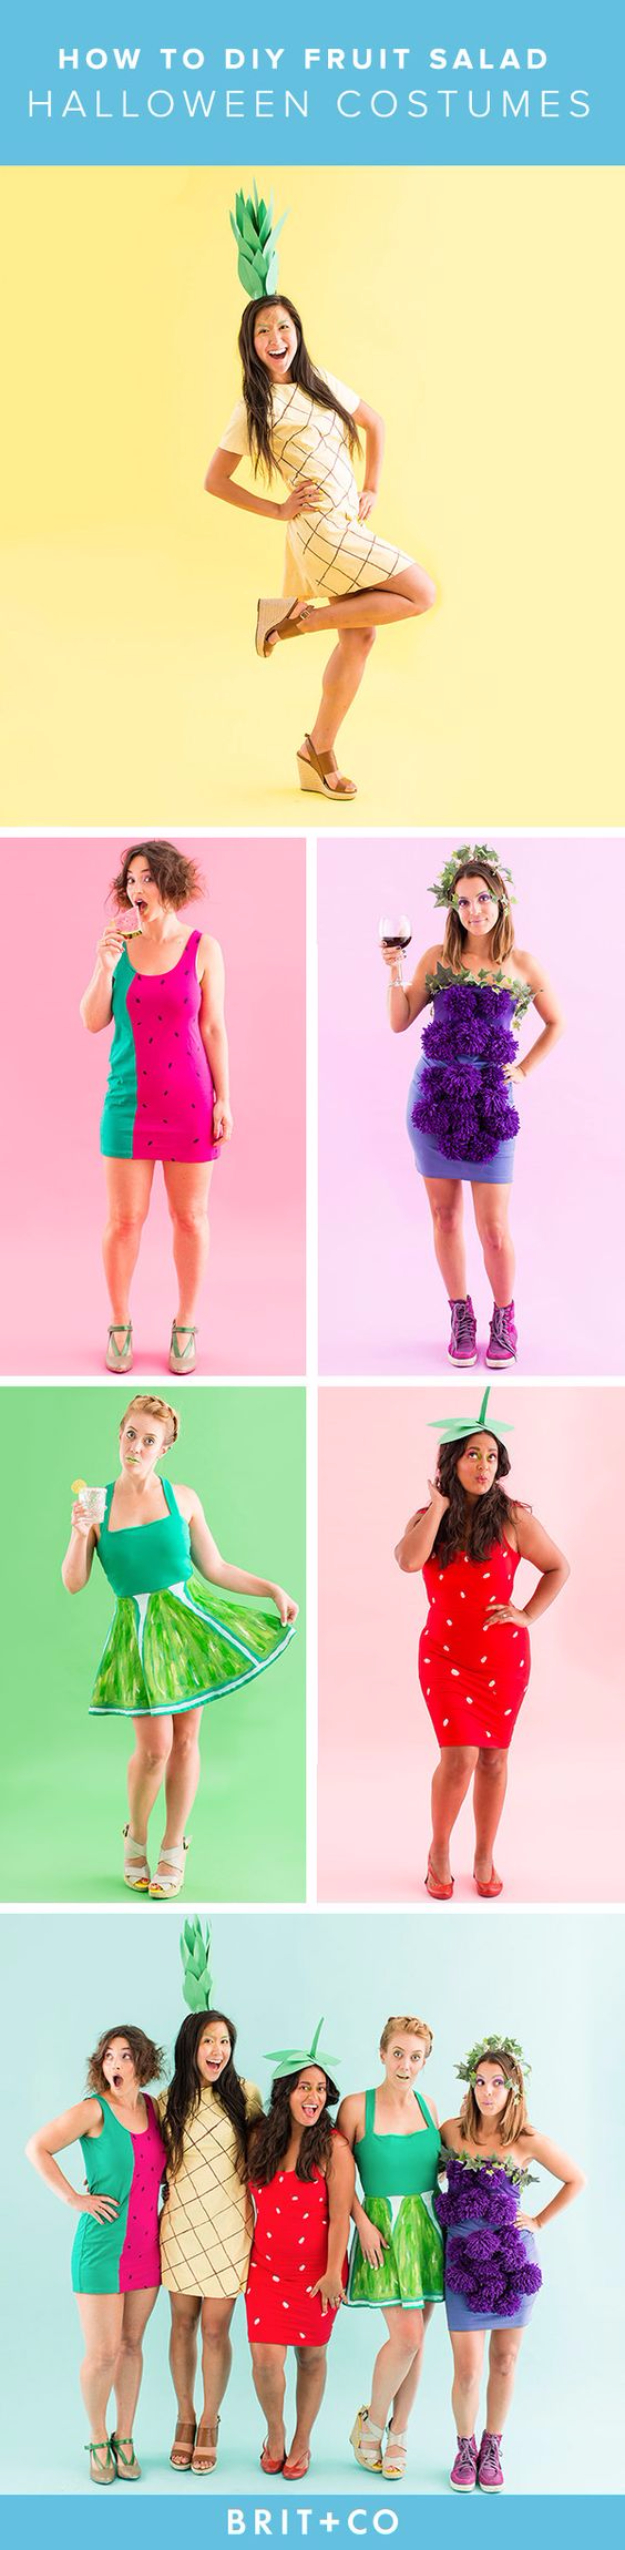 Best DIY Halloween Costume Ideas - Fruit Salad Group Halloween Costume for Groups - Do It Yourself Costumes for Women, Men, Teens, Adults and Couples. Fun, Easy, Clever, Cheap and Creative Costumes That Will Win The Contest